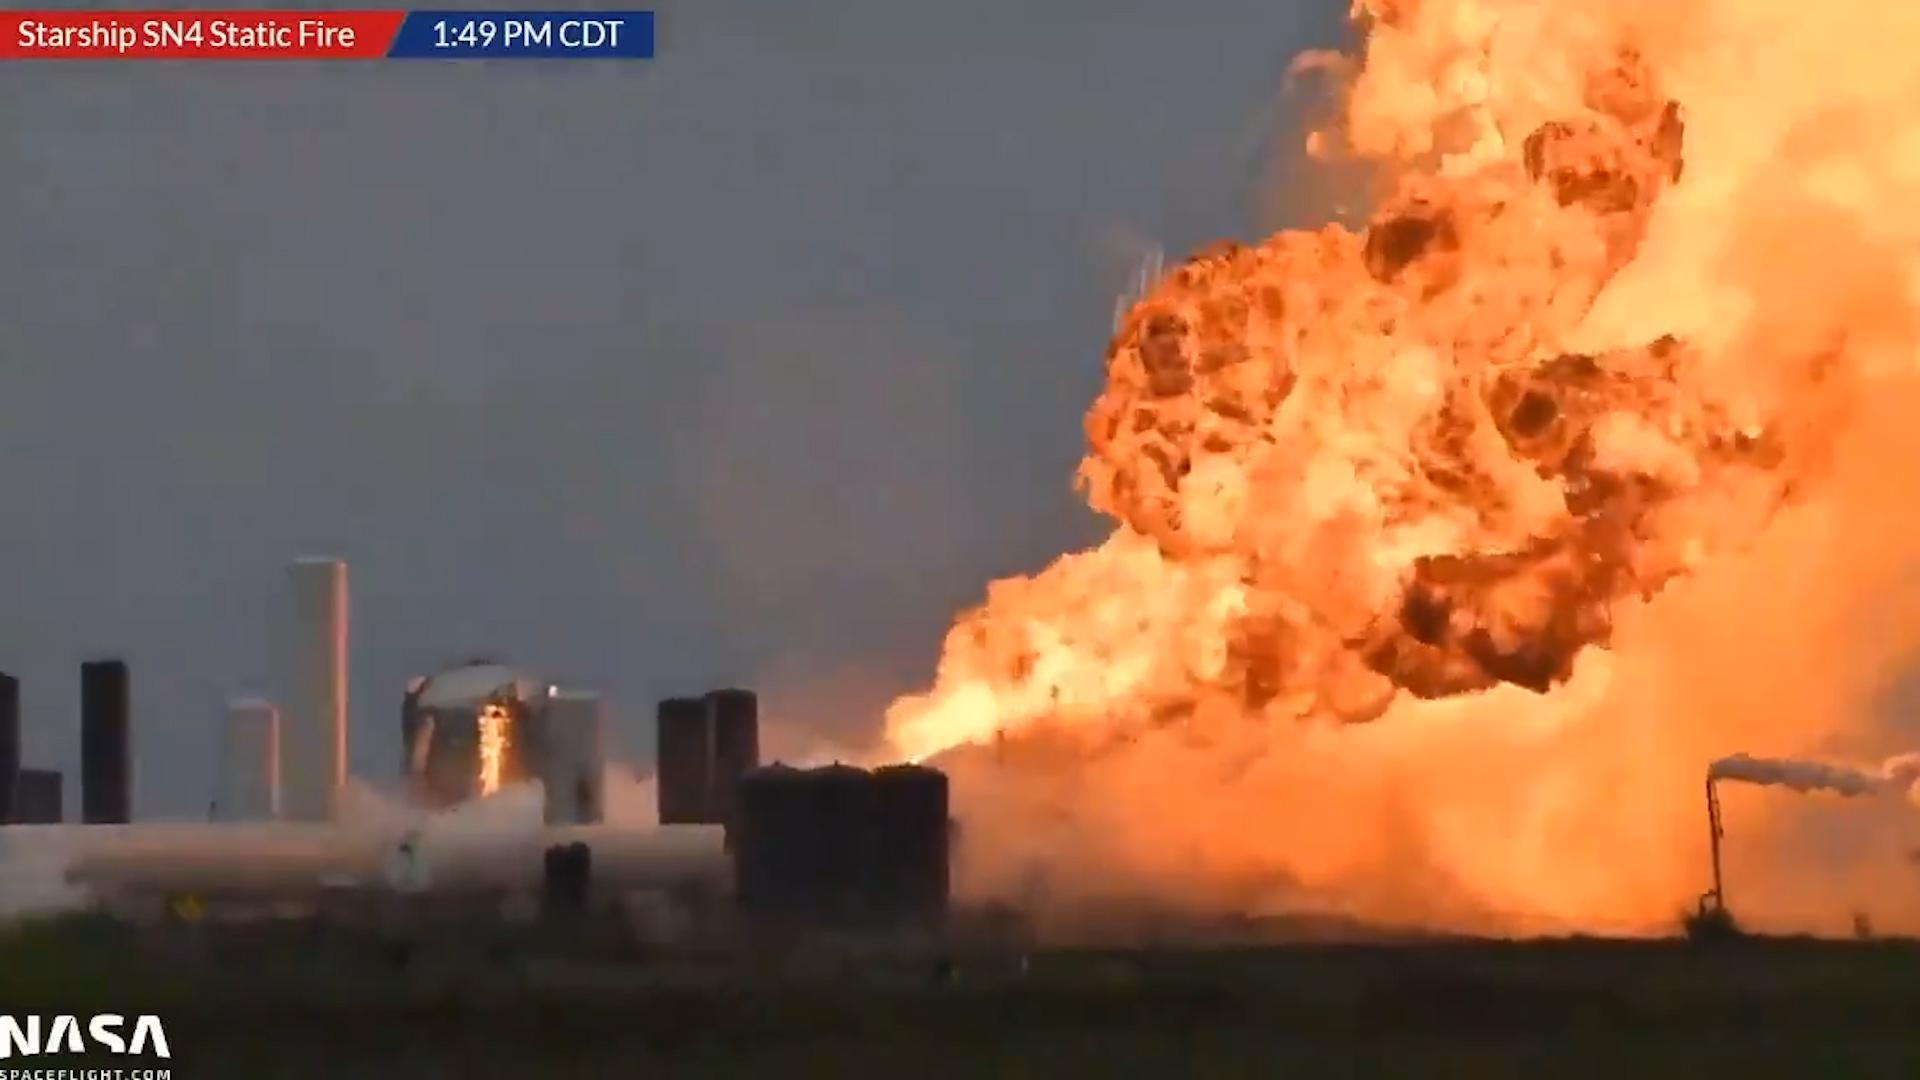 SpaceX Starship rocket explodes in dramatic fireball after test